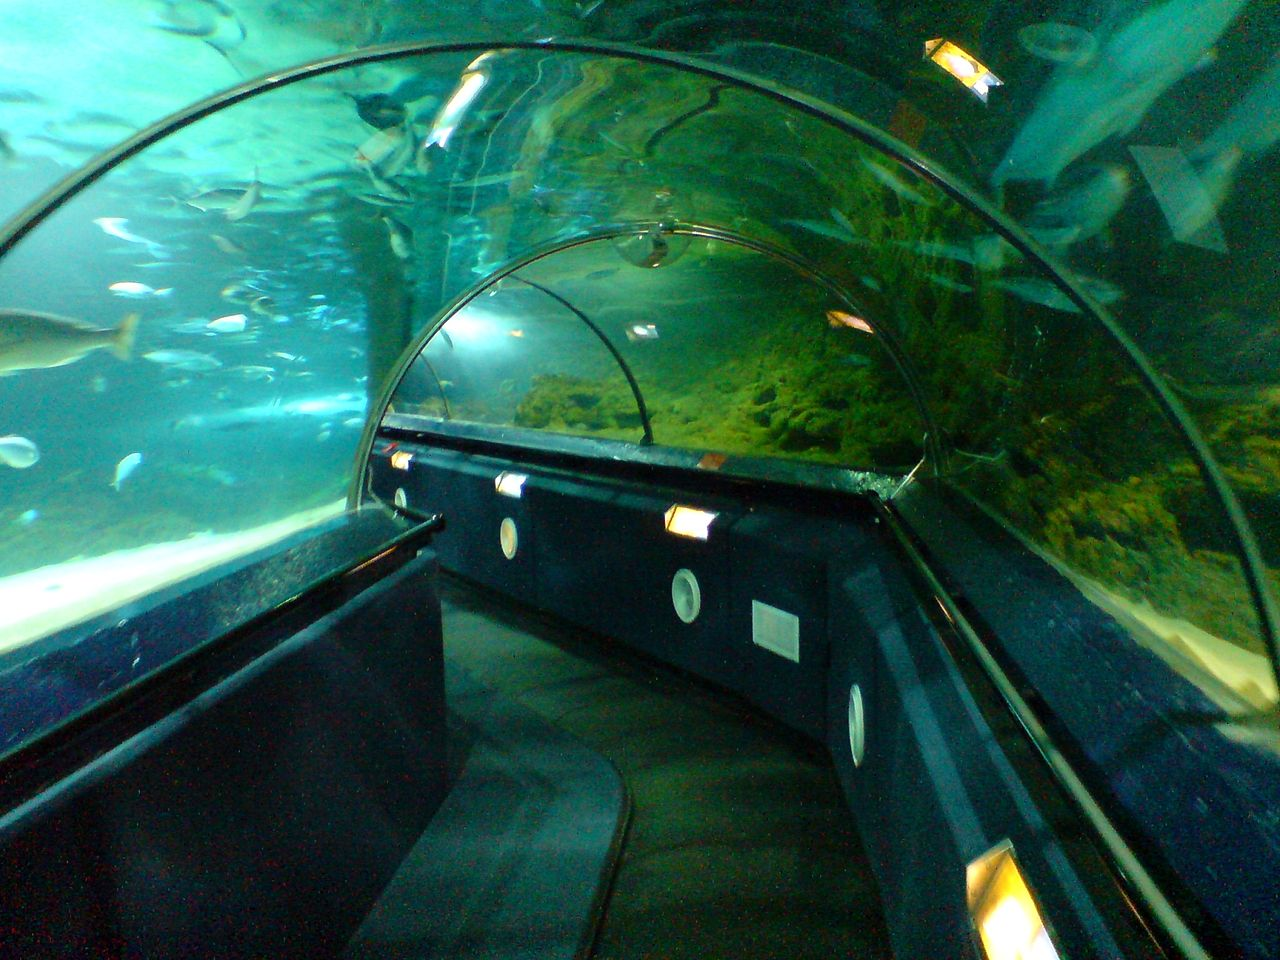 Visitors get view the marine life through long acrylic tunnels.